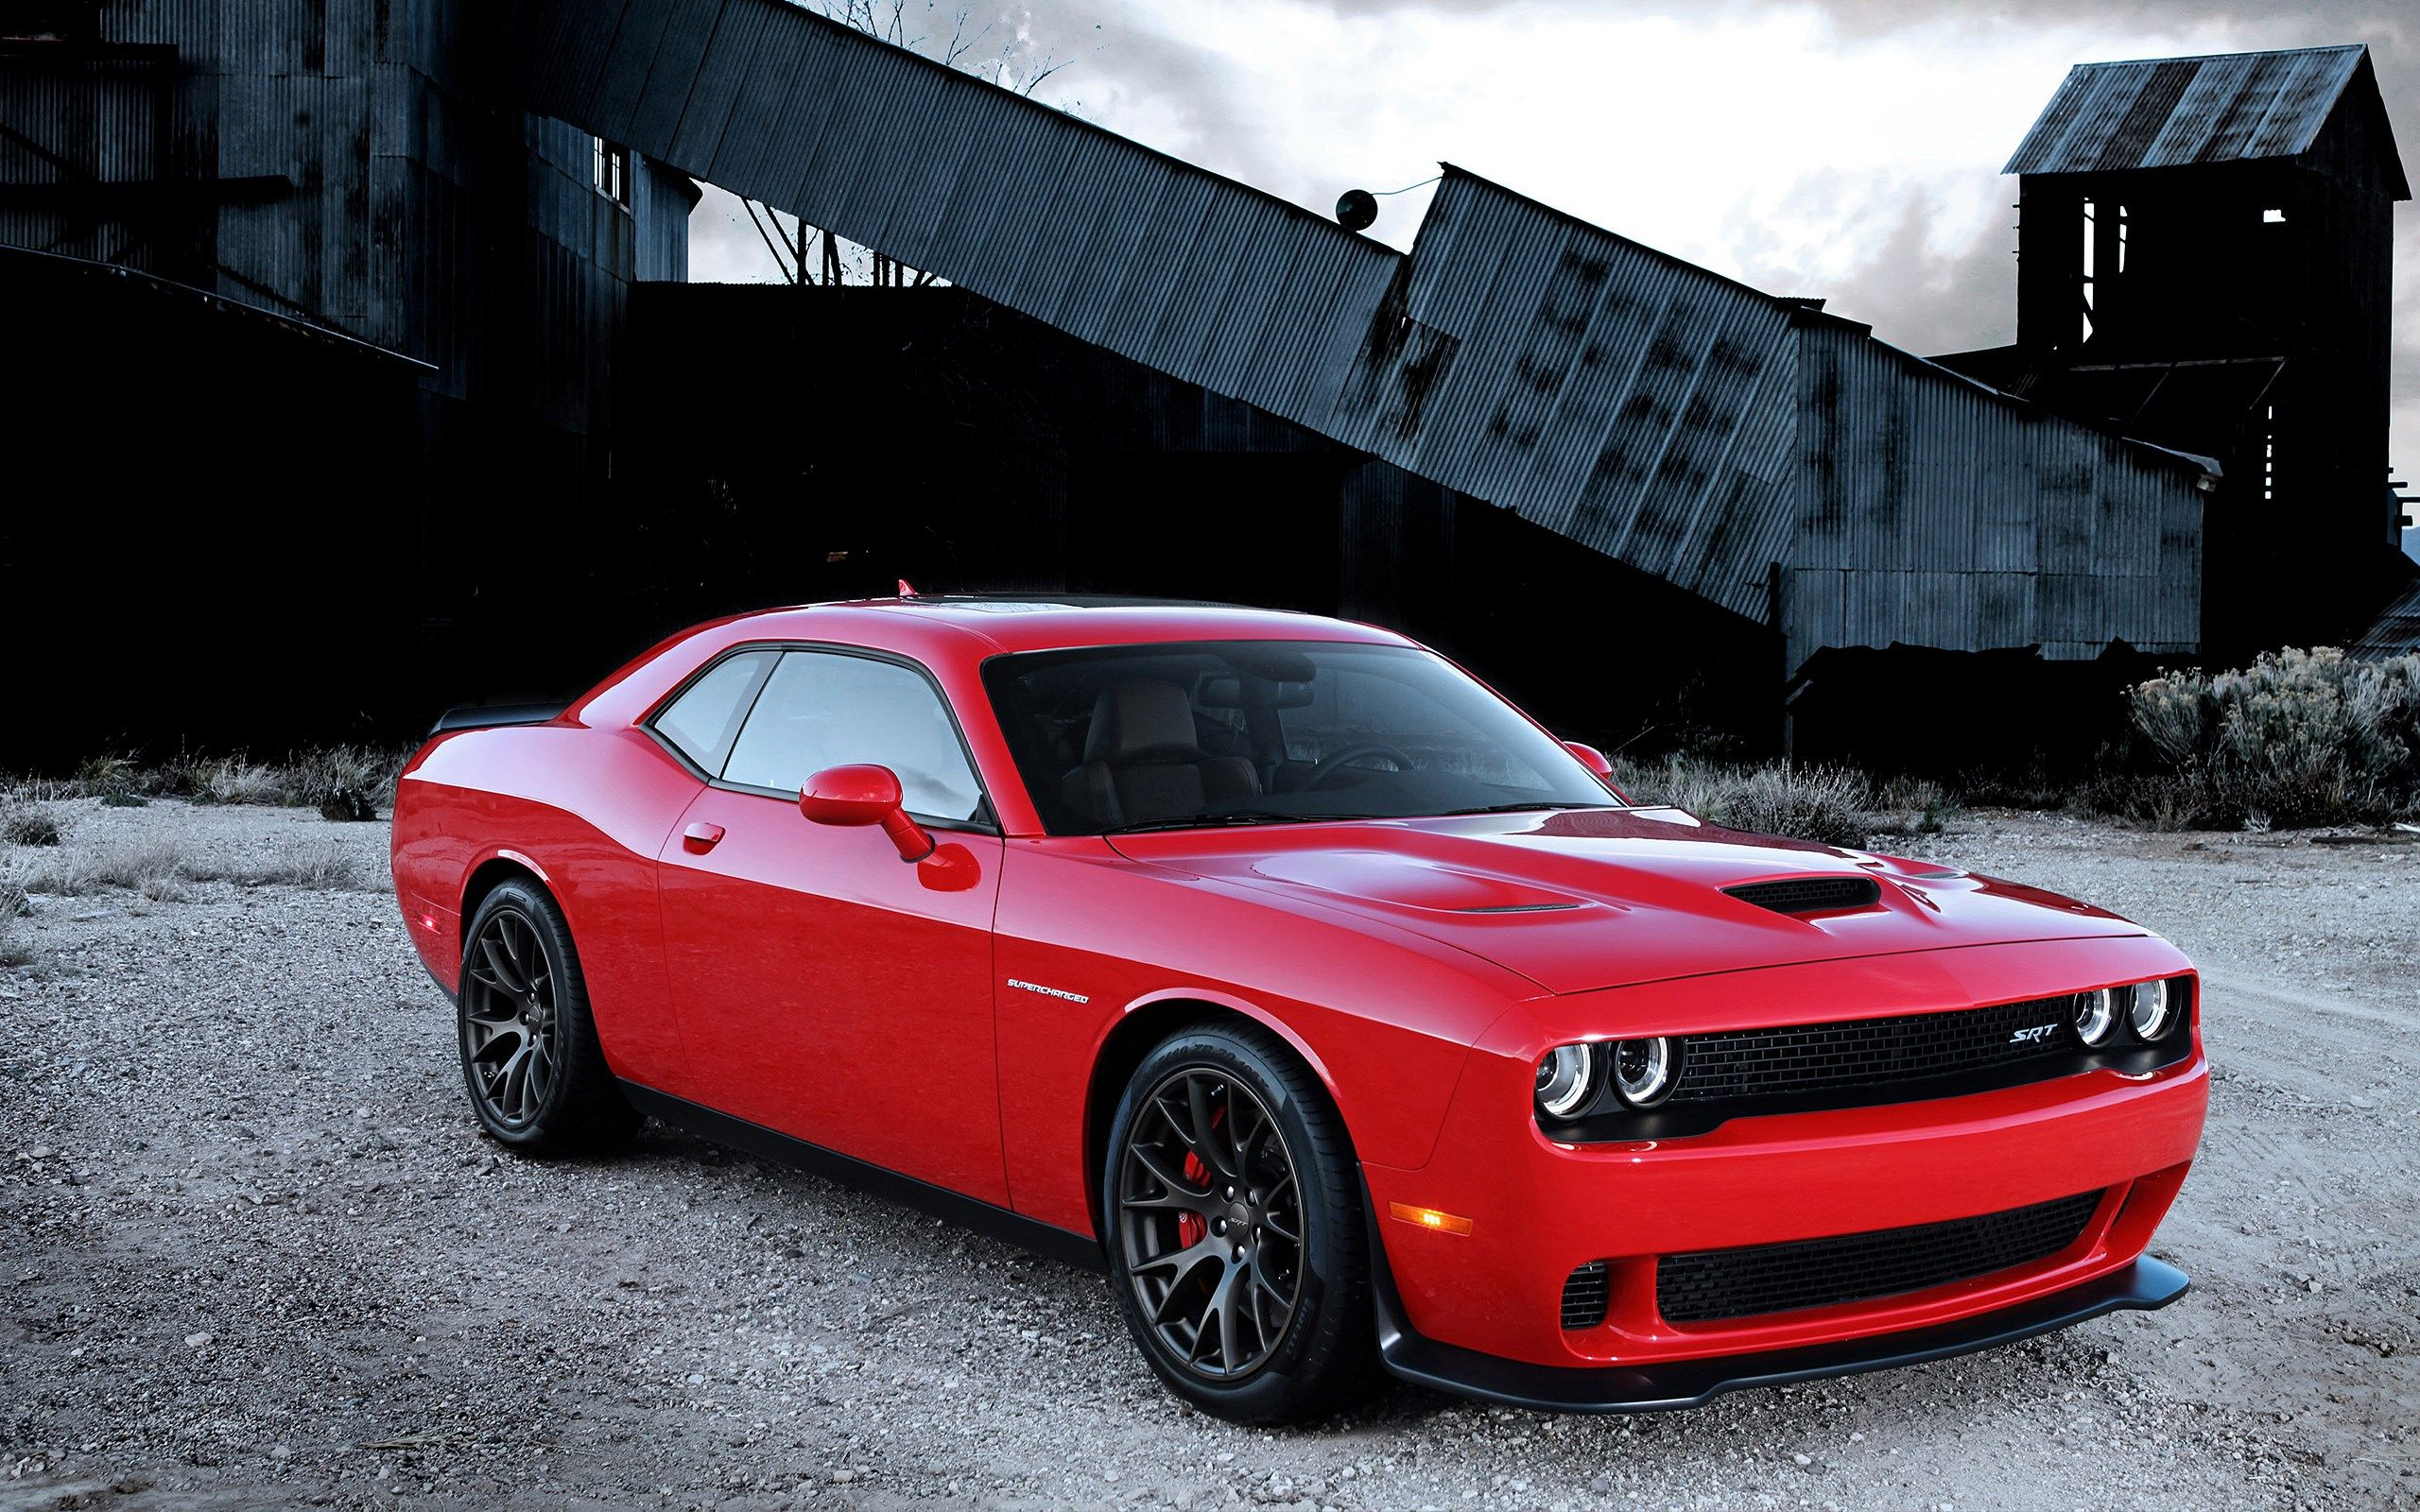 The 2016 dodge challenger hellcat is the redesigned version of the 2015 model challenger helicat that is expected to come with some fantastic interior and